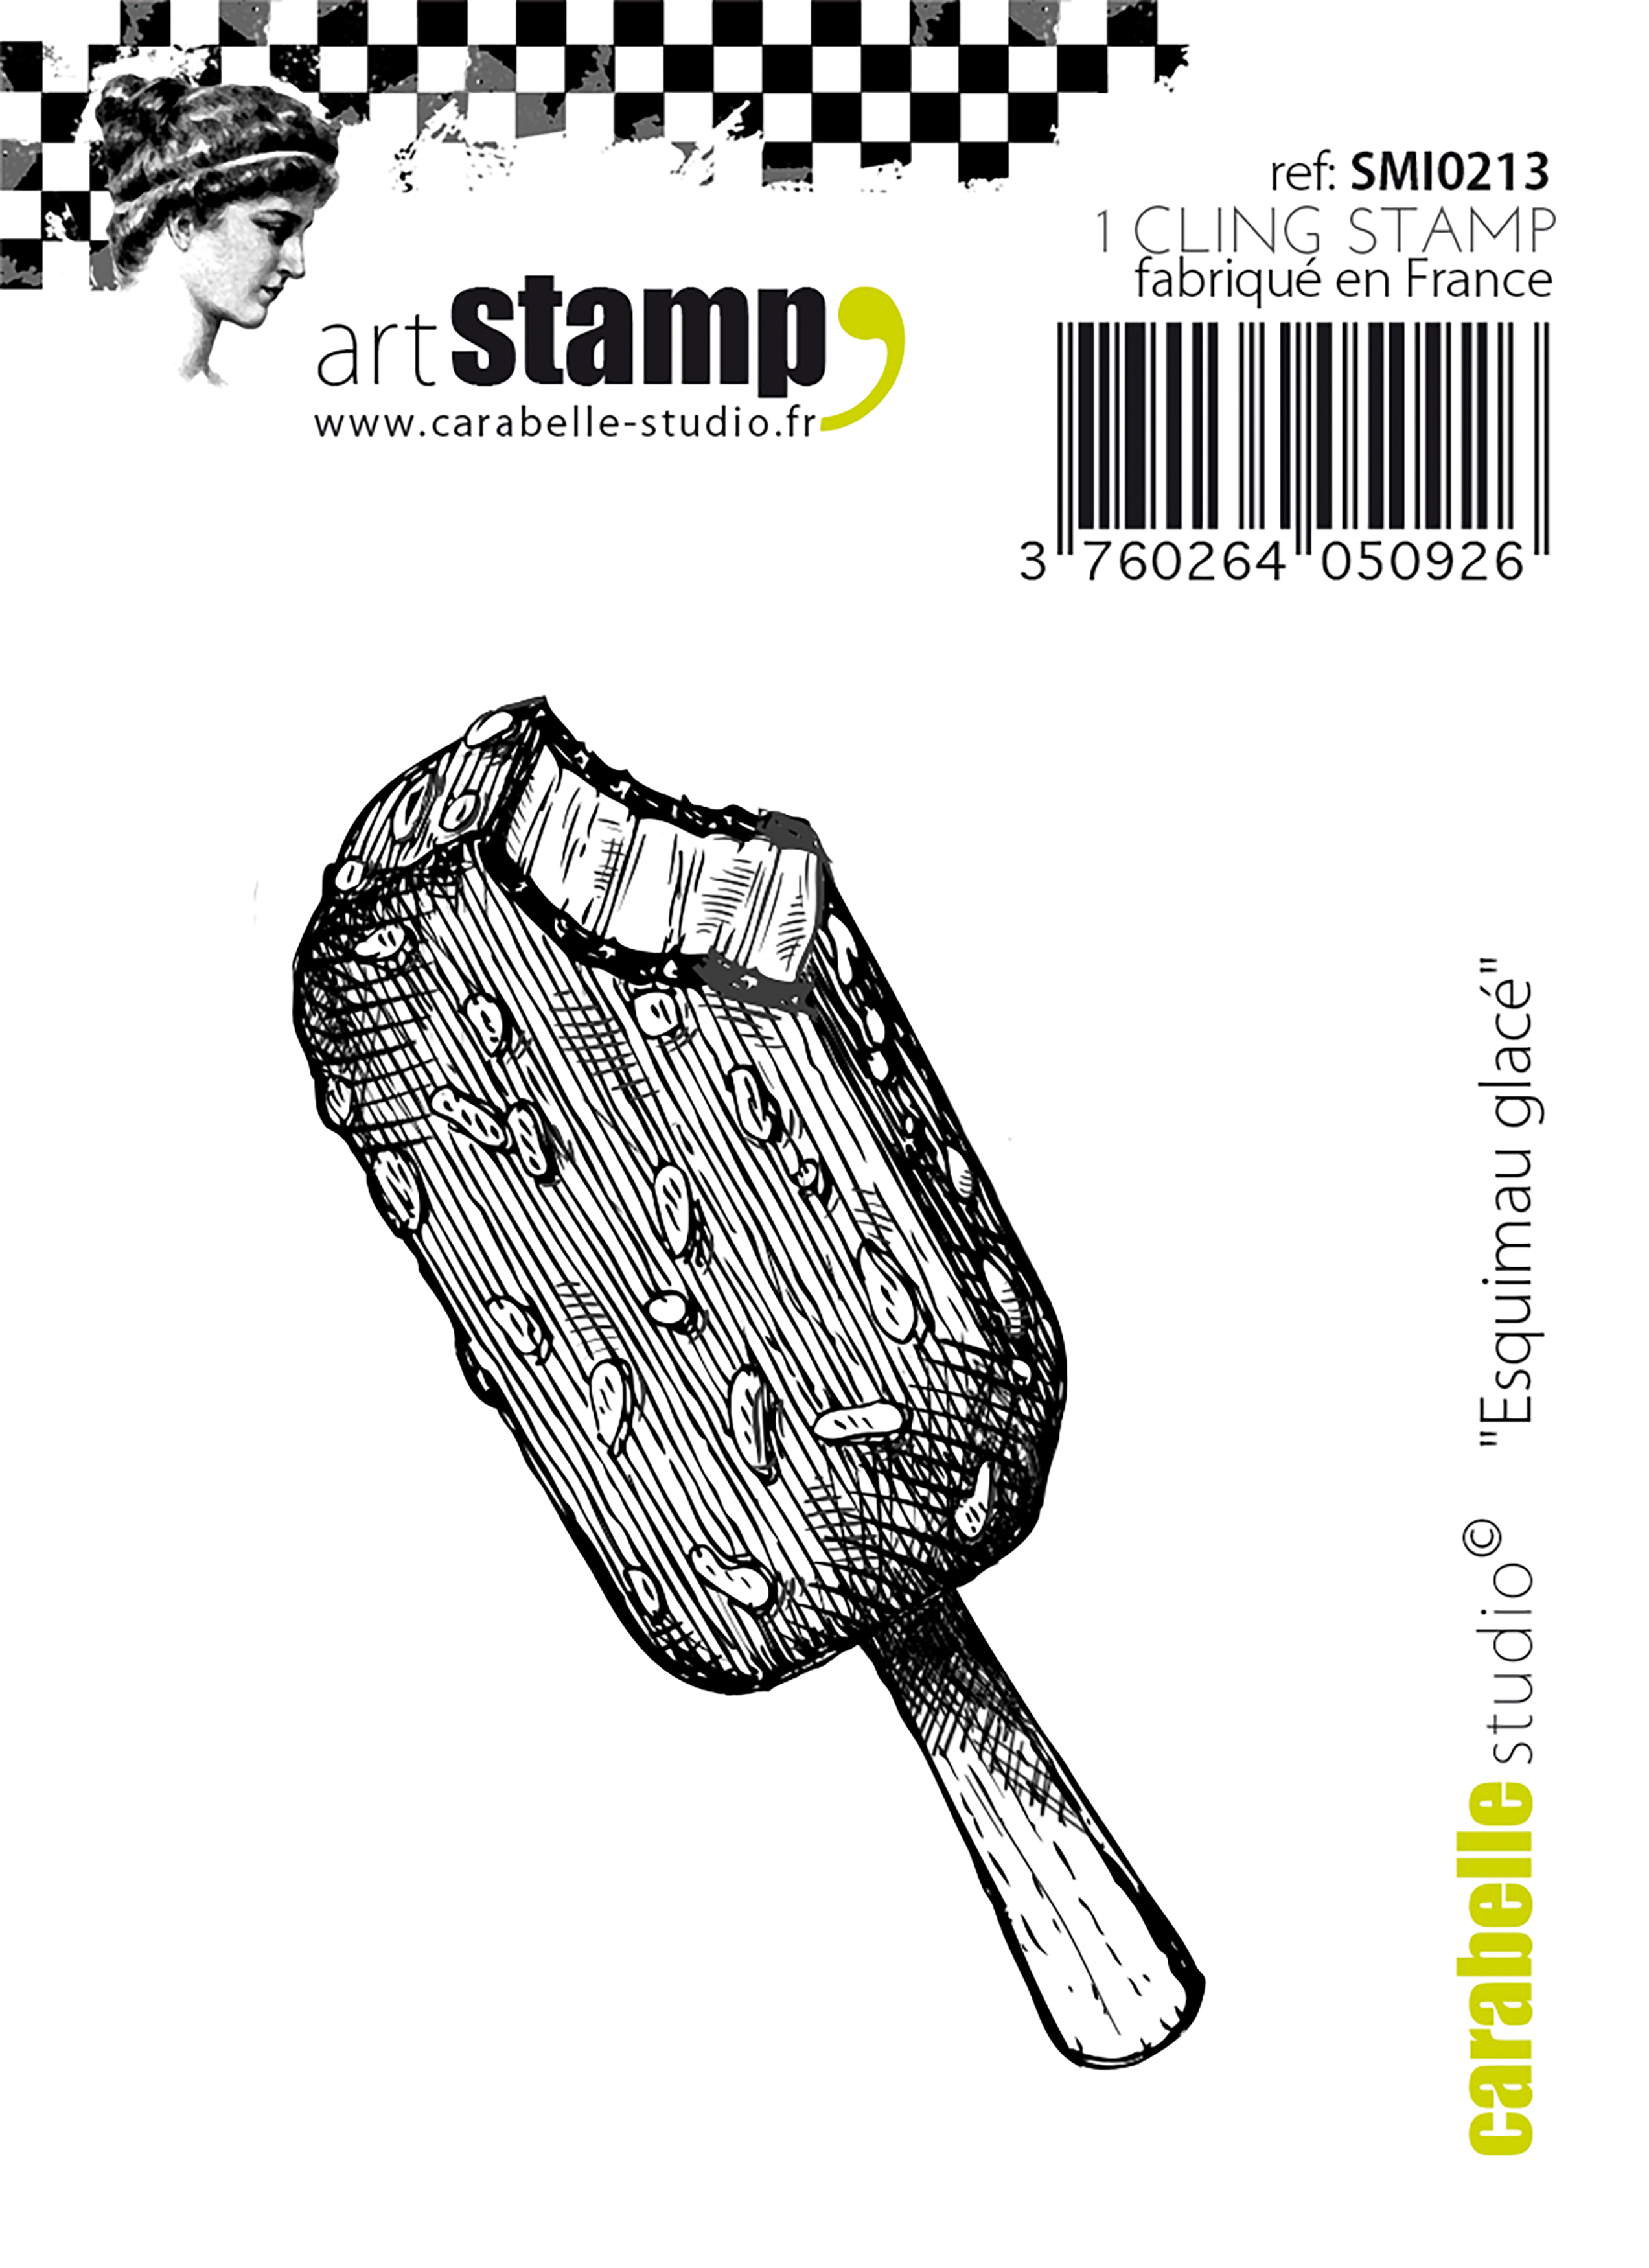 Ice Cream Treat - Carabelle Studio Cling Stamp Small 2.56